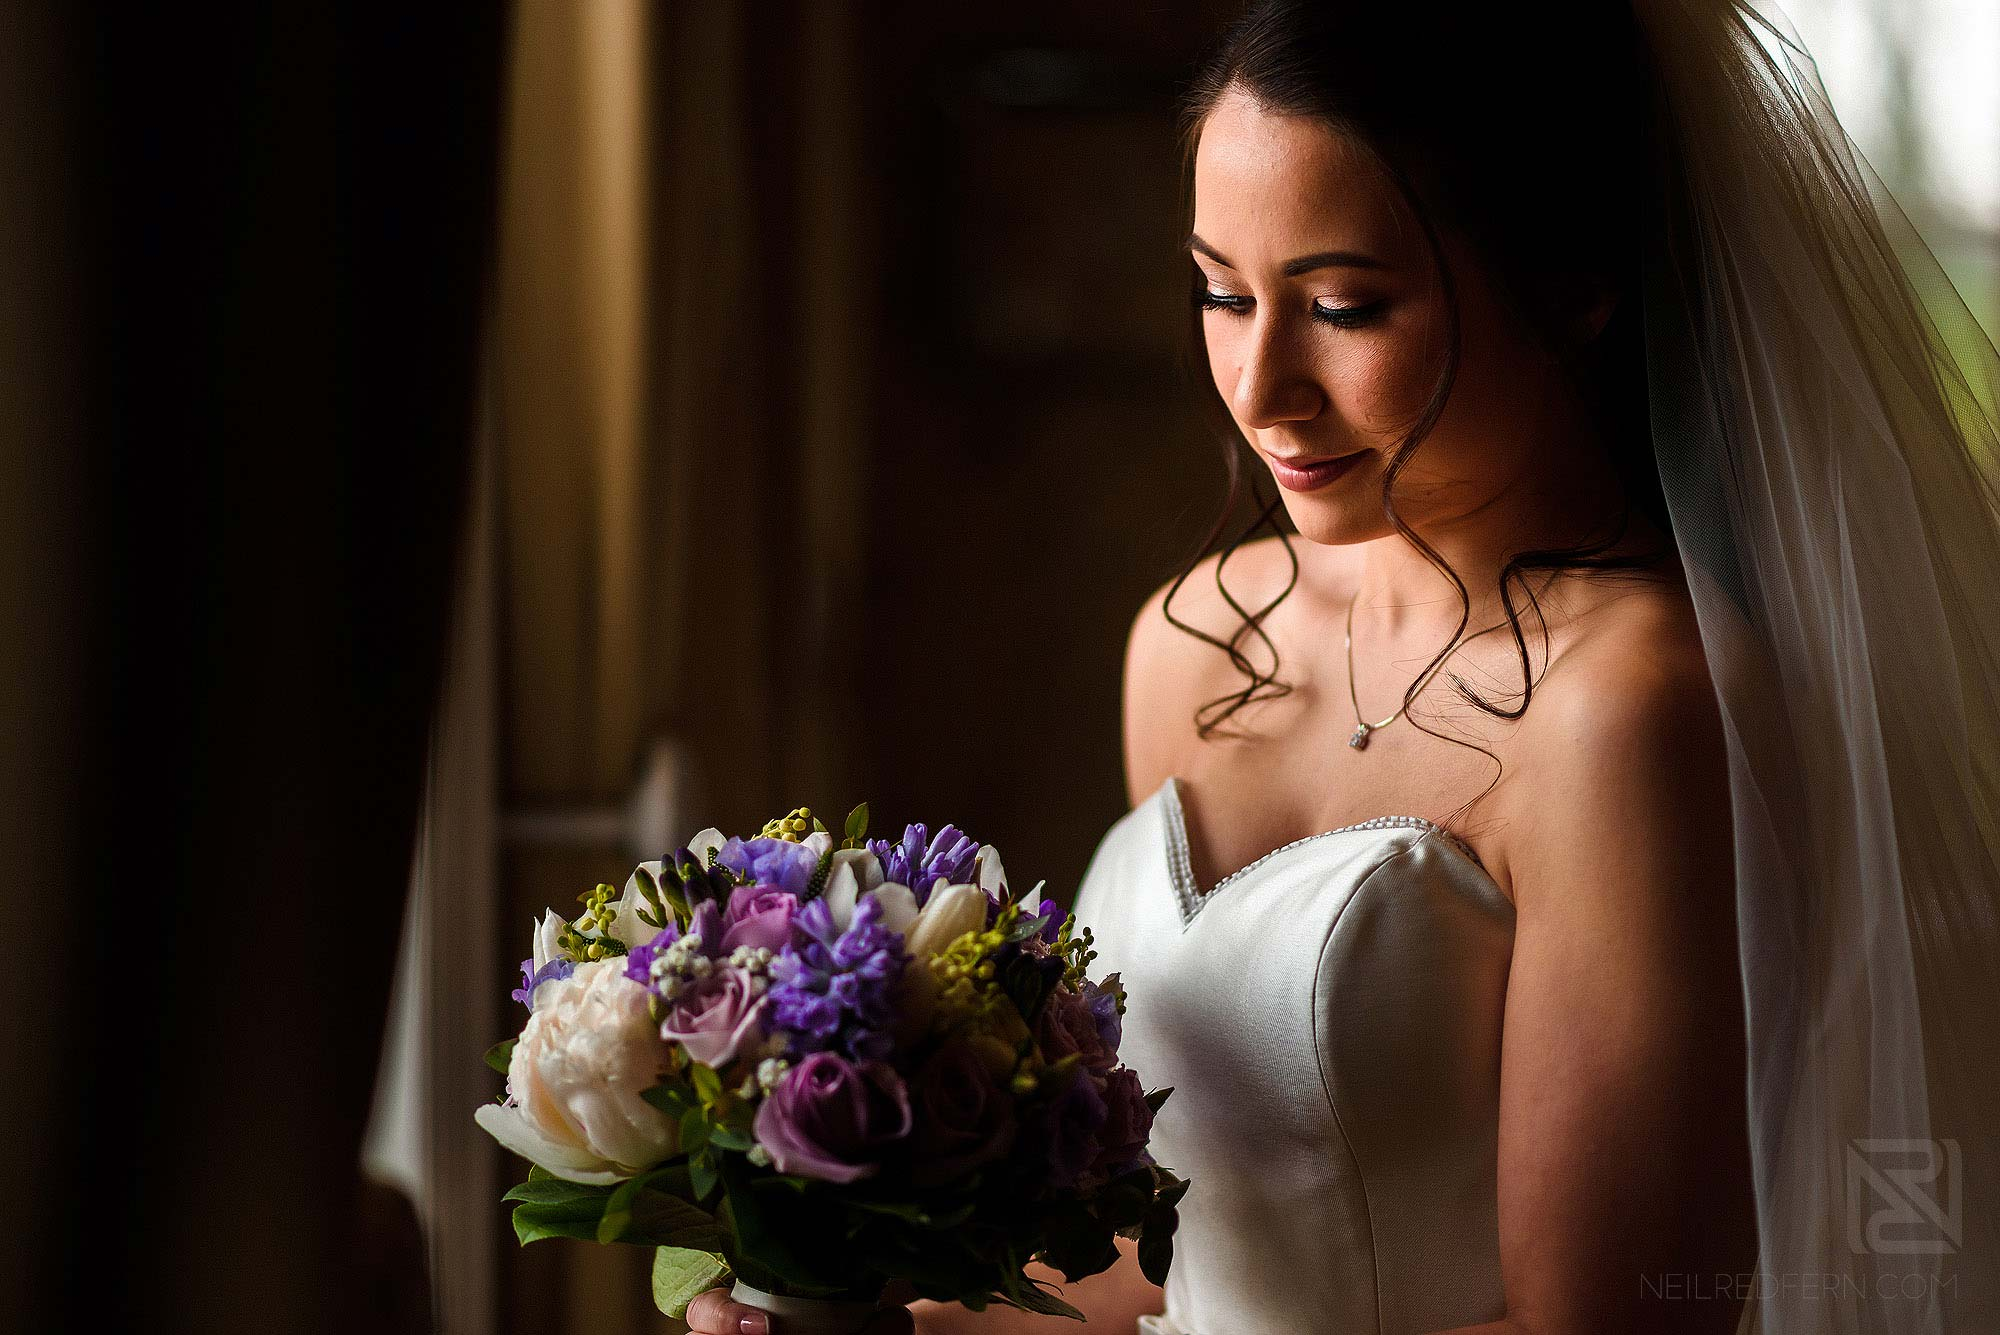 beautiful portrait of bride just before getting married